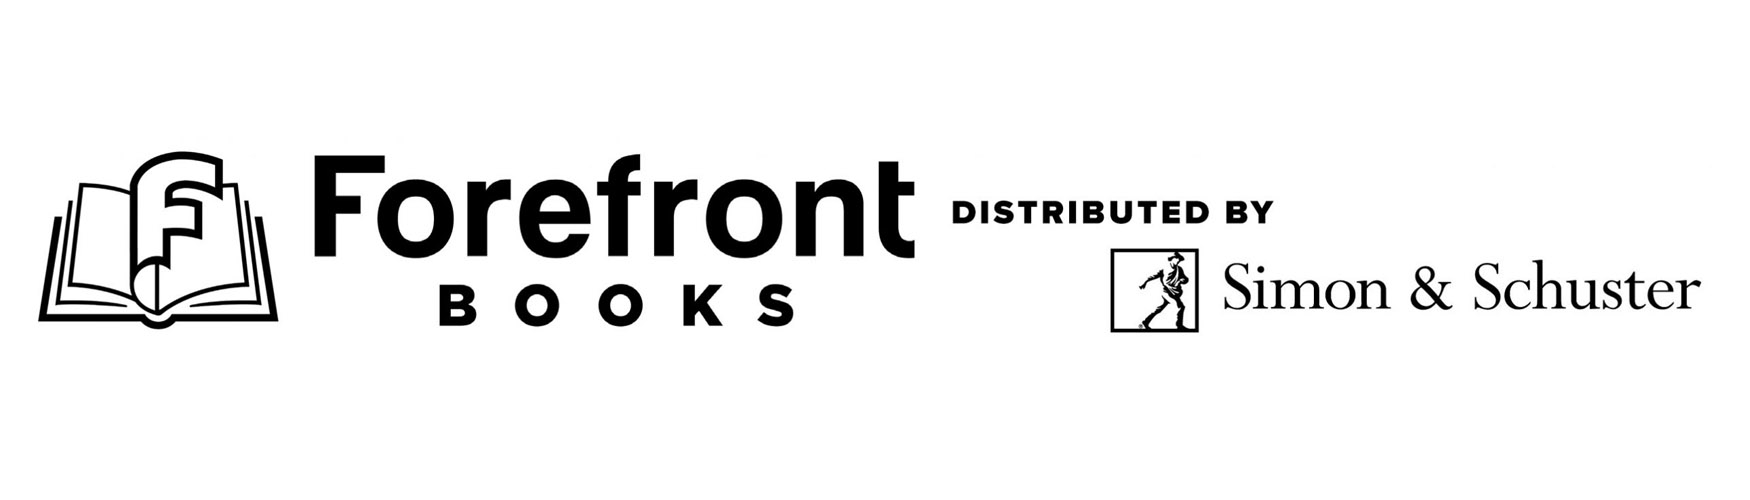 forefront books, distributed by Simon & Schuster